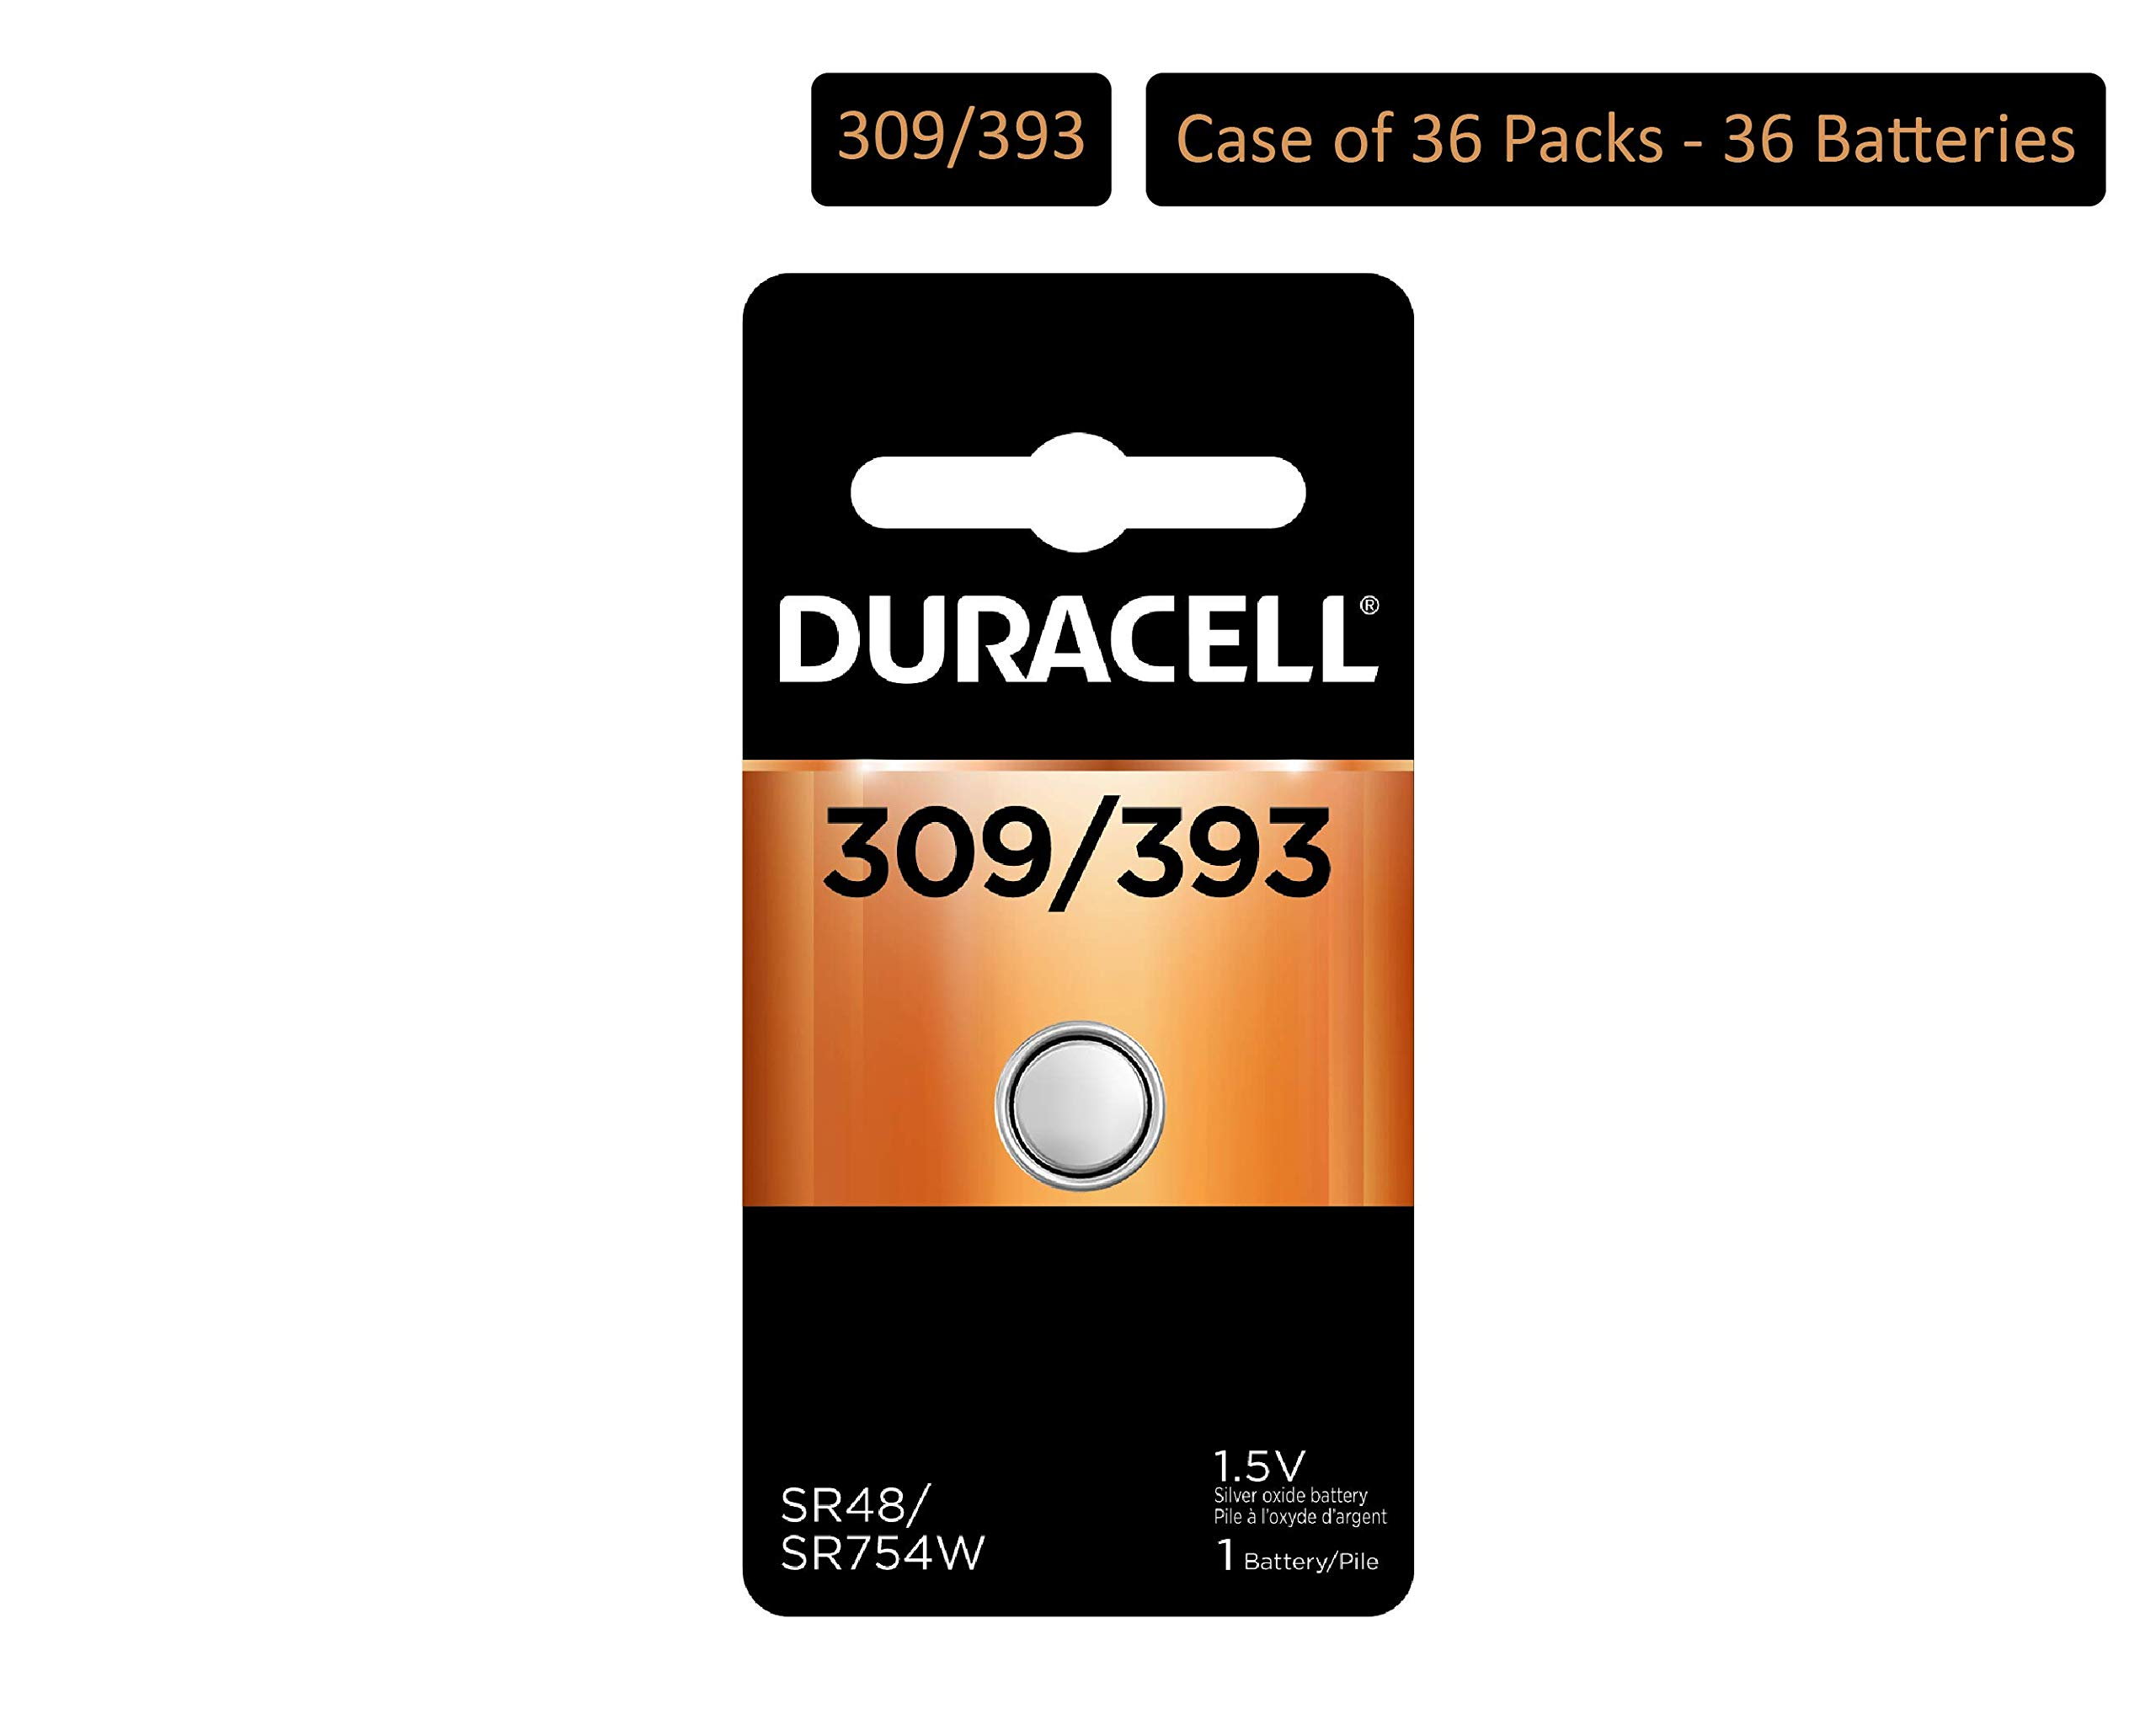 Duracell - 309/393 1.5V Silver Oxide Button Battery - long-lasting battery (Pack of 36)